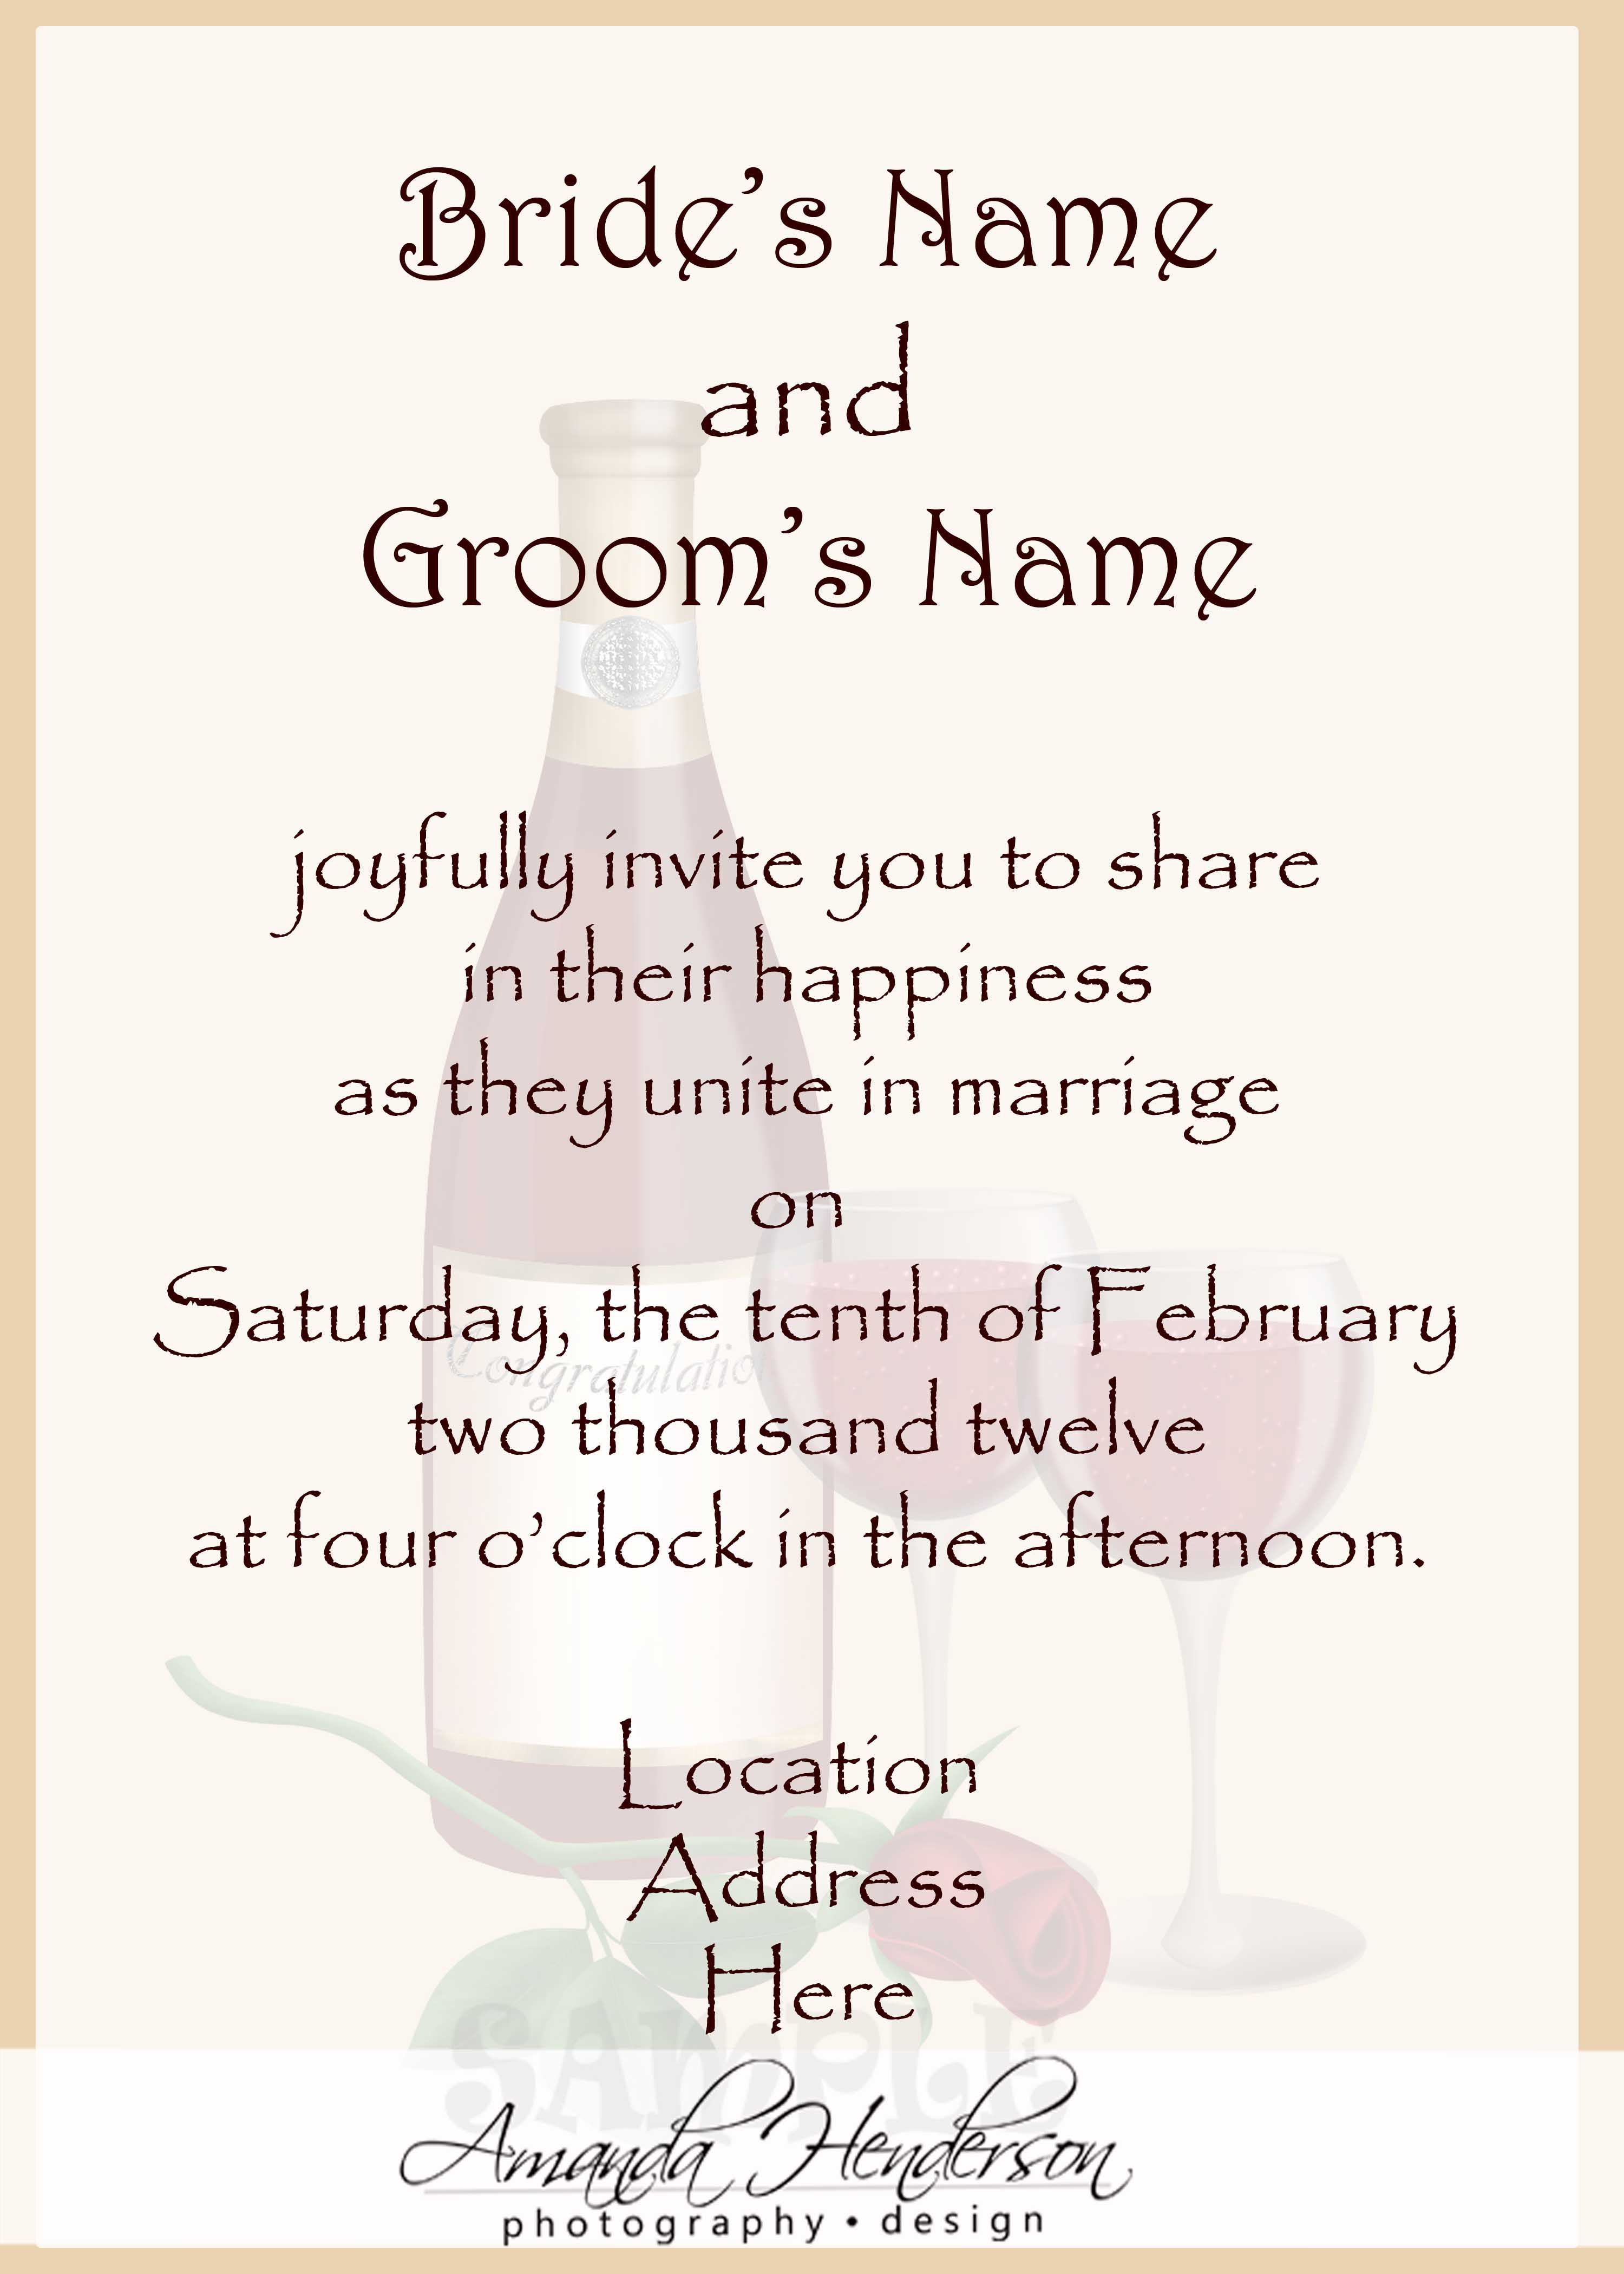 Sample Wedding Invitation Card : Sample Wedding Invitation Card ...